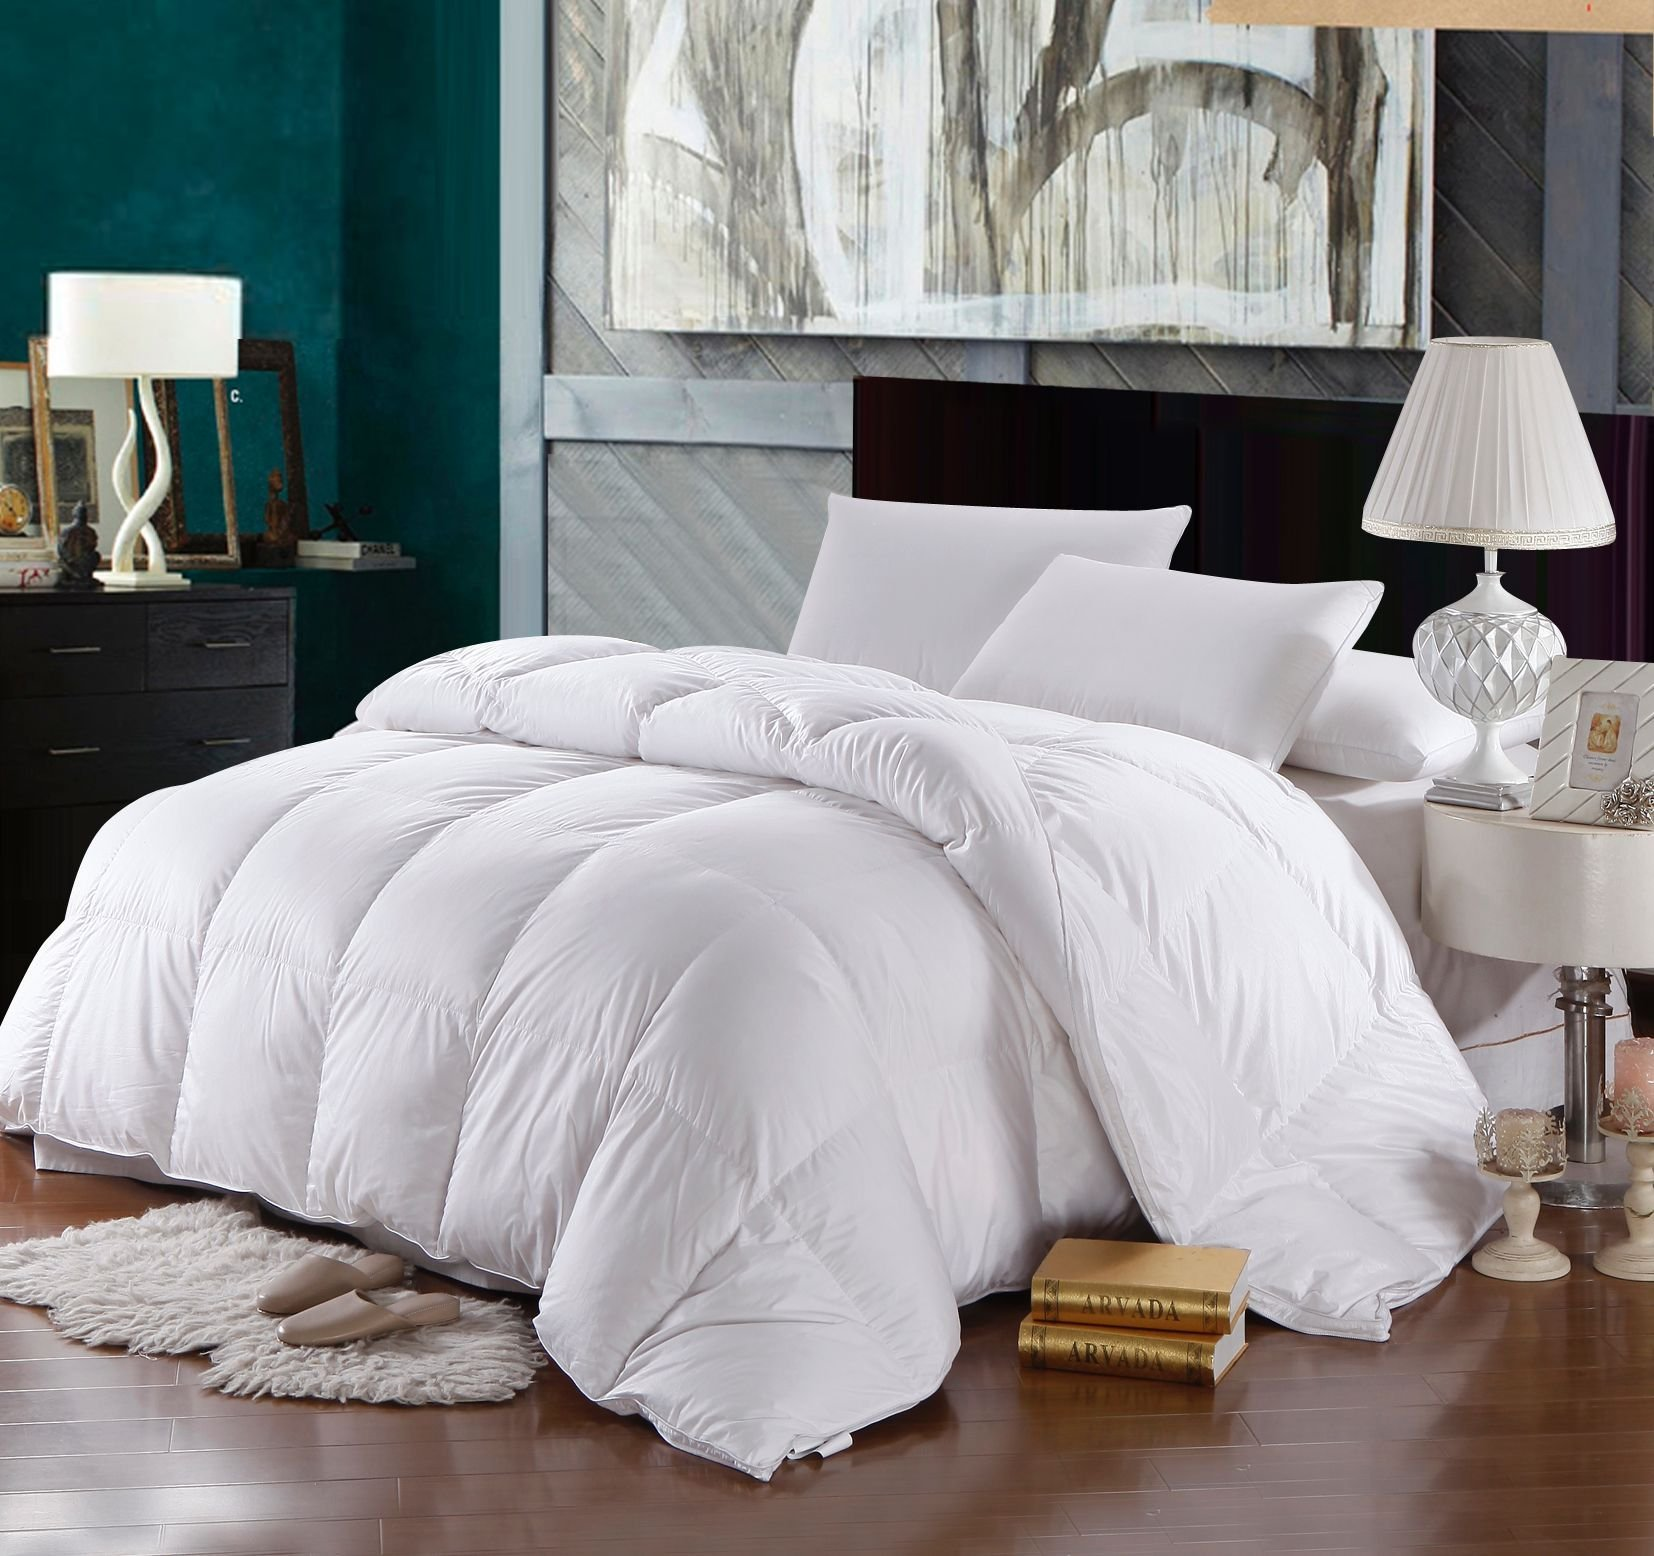 CDM product Royal Bedding Abripedic Hungarian Goose Down Comforter, Hypoallergenic, Duvet Insert, 500-Thread-Count, 100% Cotton Shell, 750FP - 46 Ounces, Queen small thumbnail image